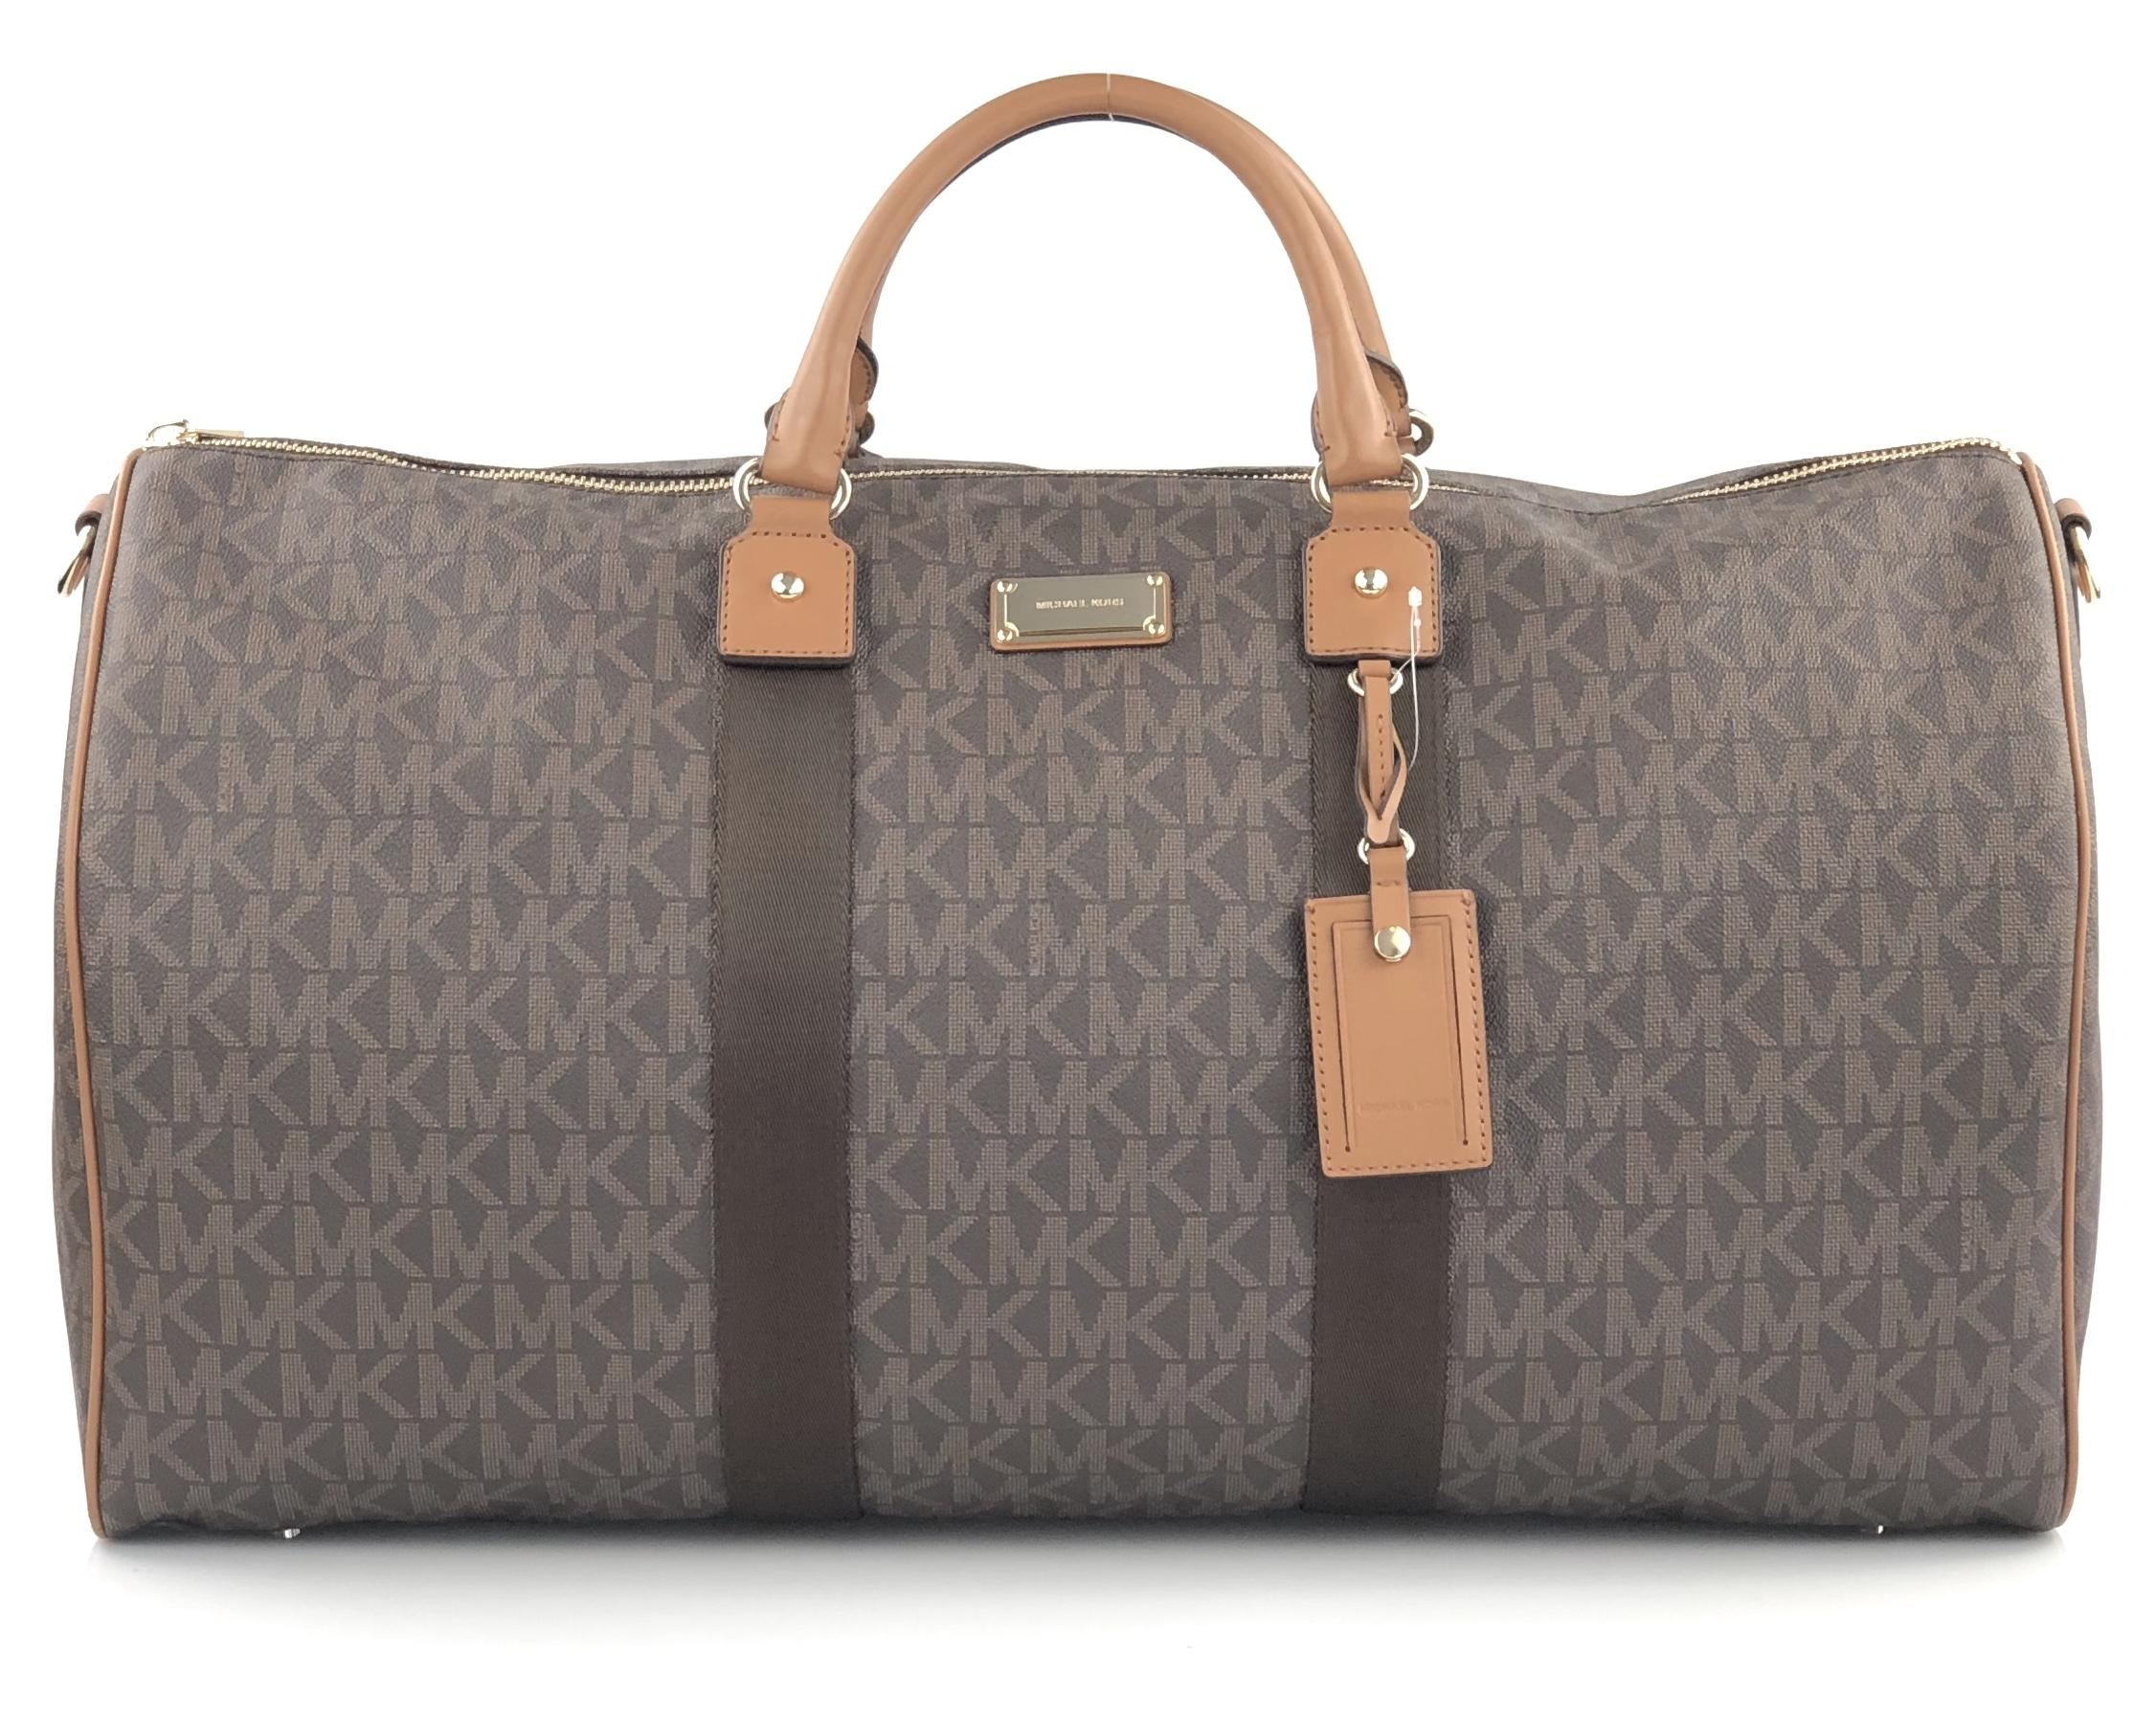 5d06aabdfcc9 free shipping michael kors canvas bags up to 90 off at tradesy 9bb29 08536